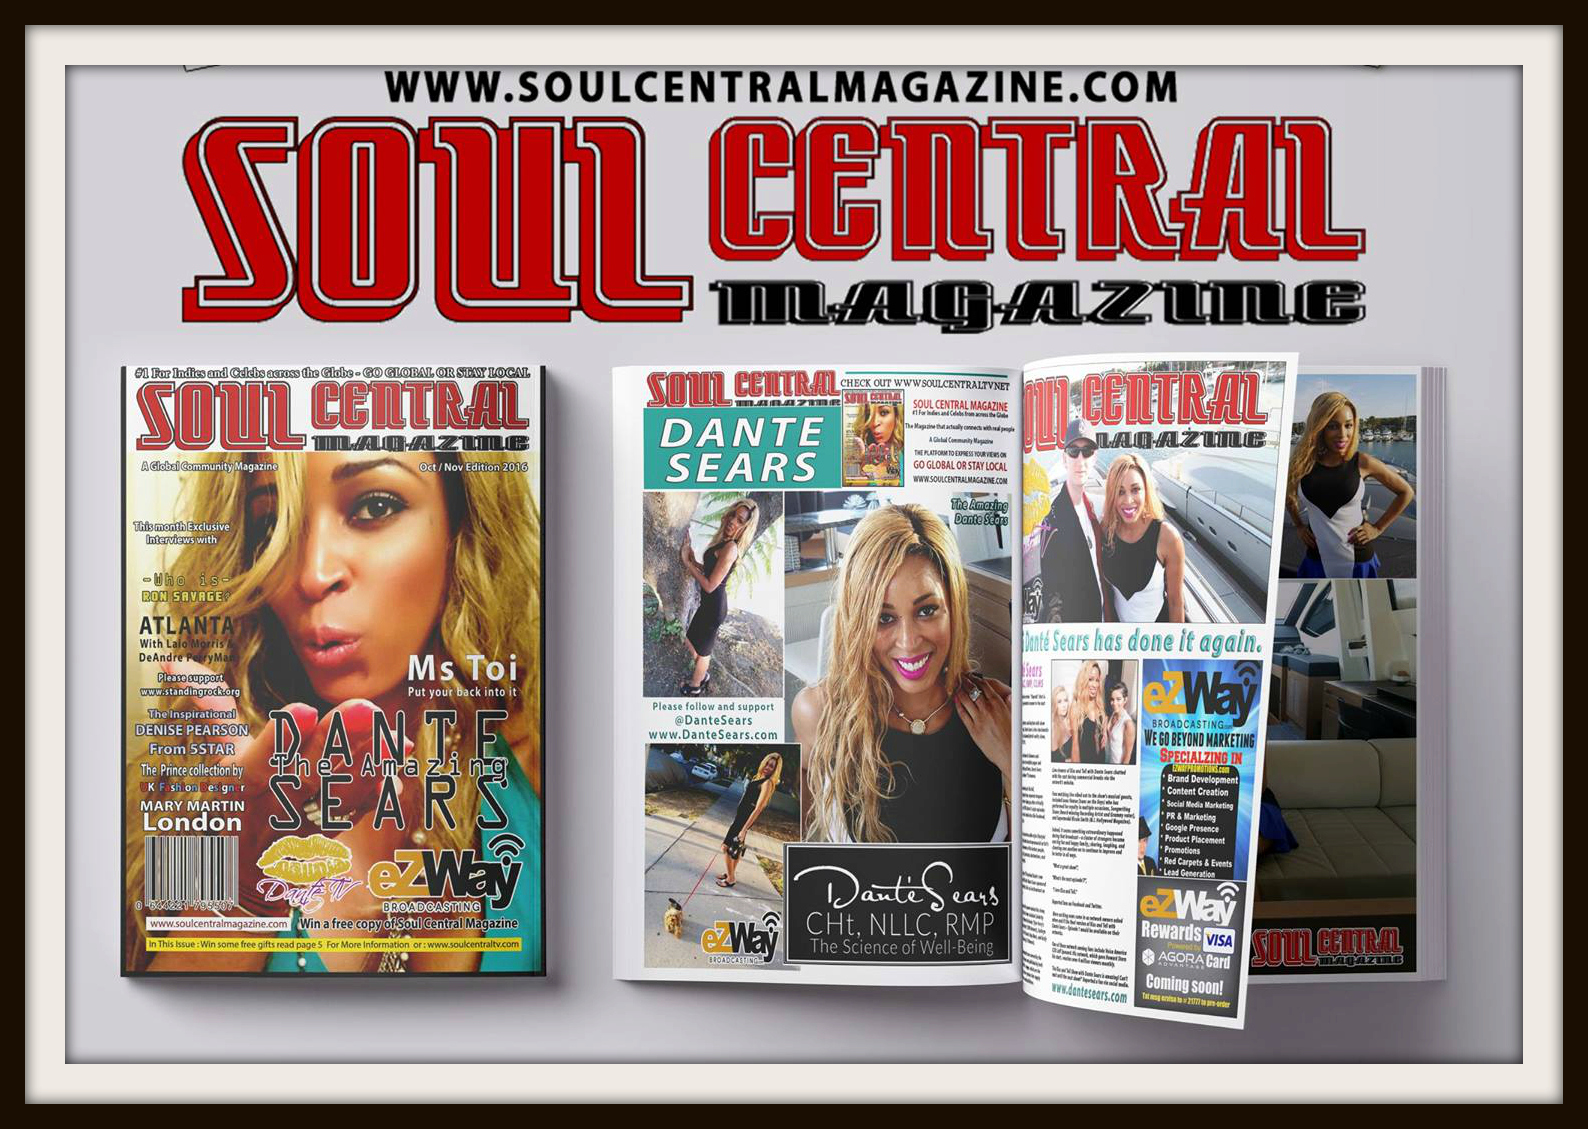 Dante Sears Cover of Soul Central Magazine